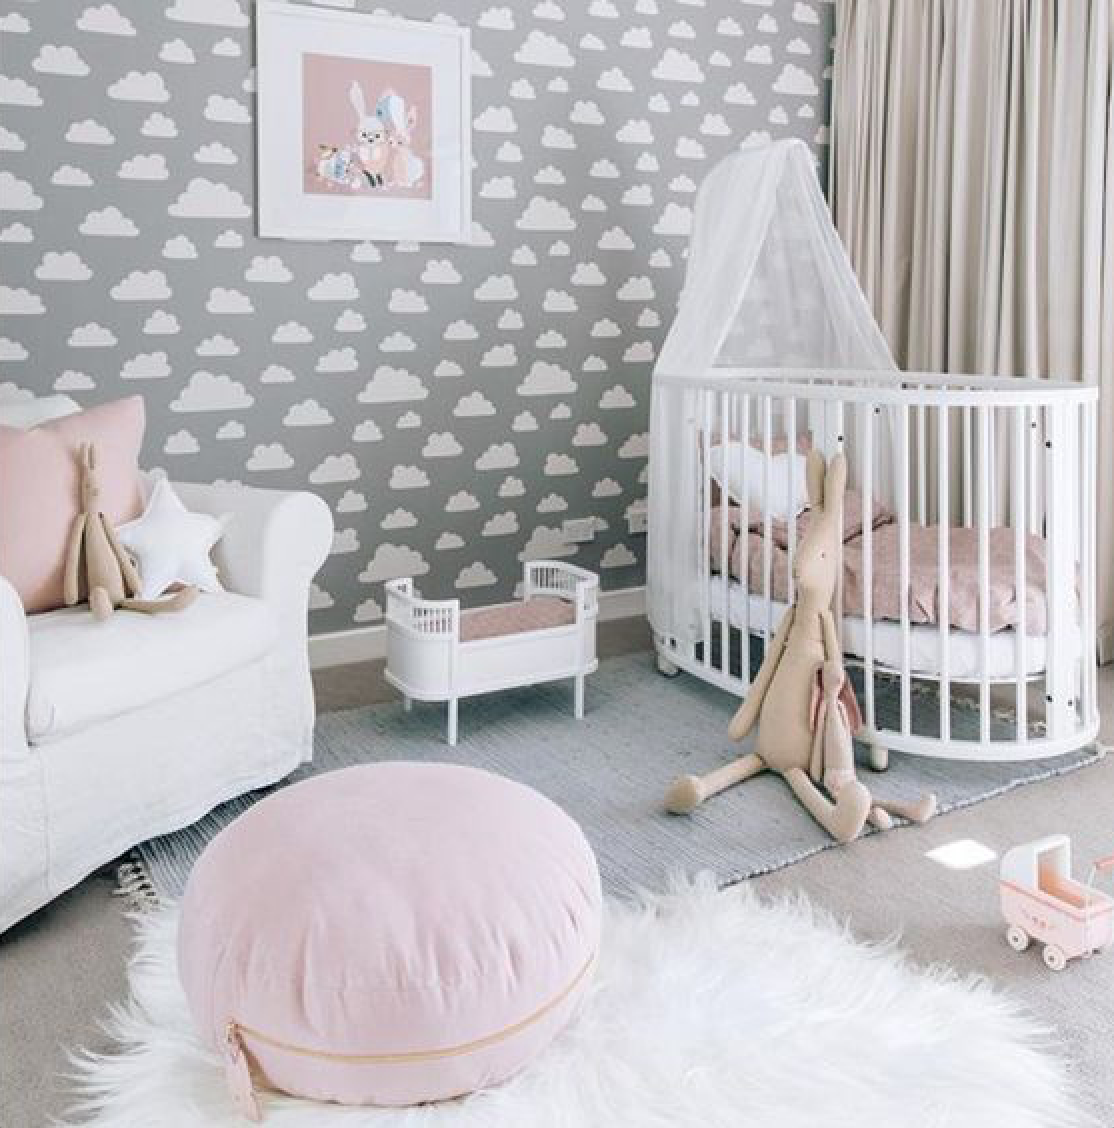 Decorating the Nursery: The Complete Guide To A Beautiful Baby's Room